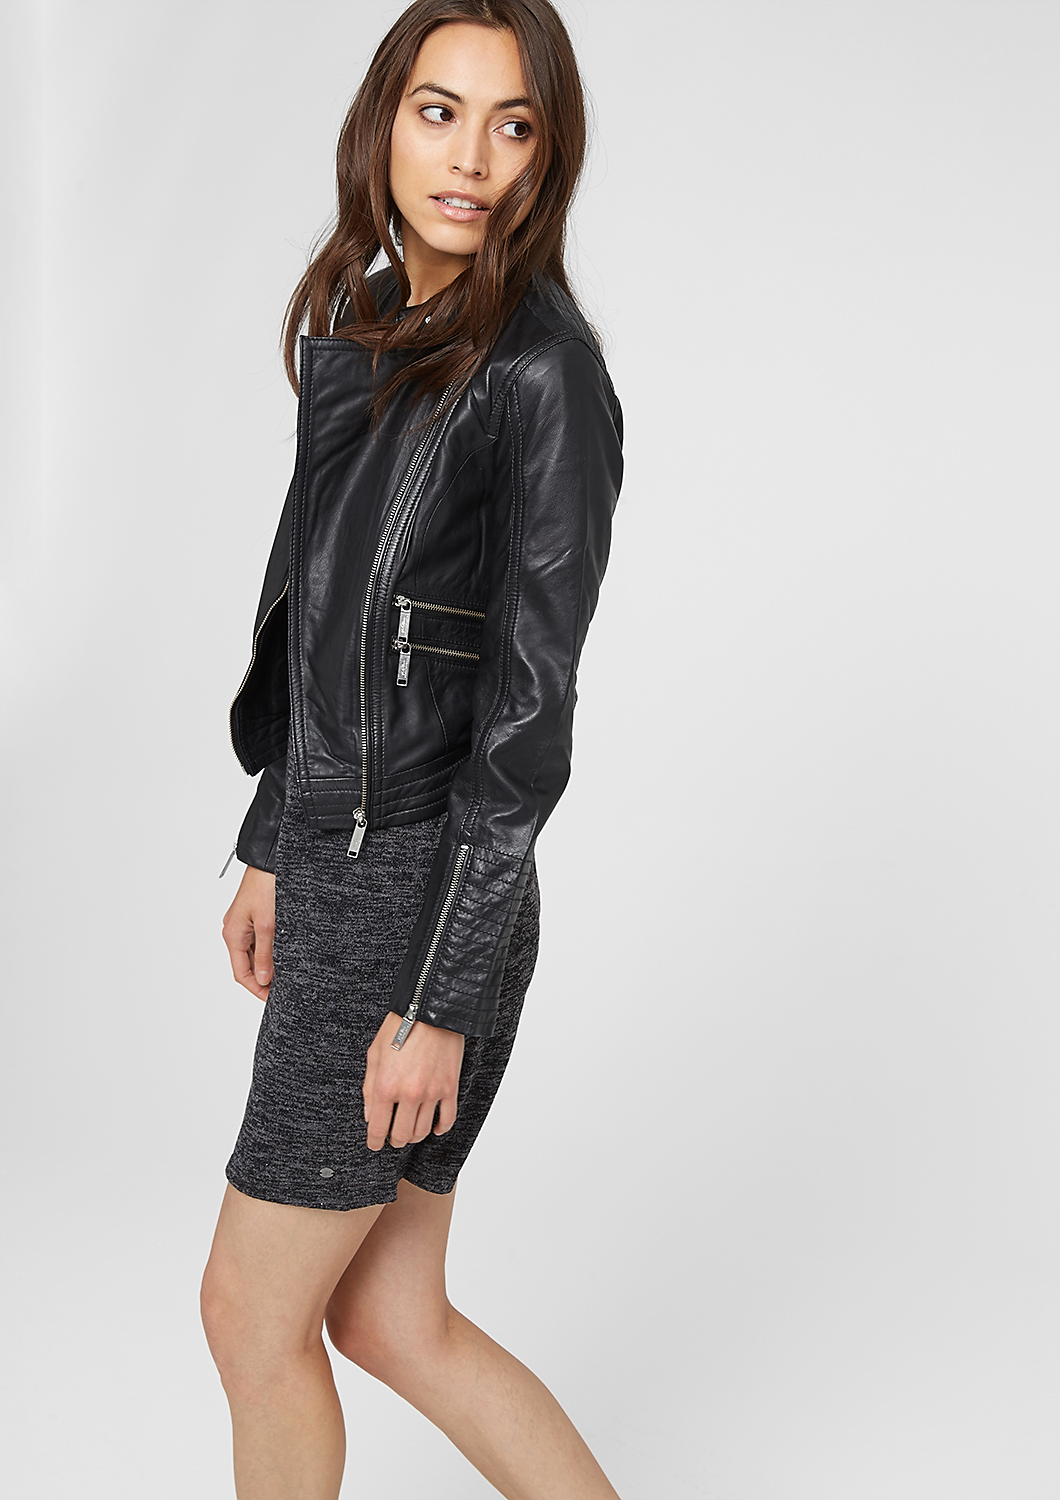 Buy women's leather & imitation leather jackets quickly and easily